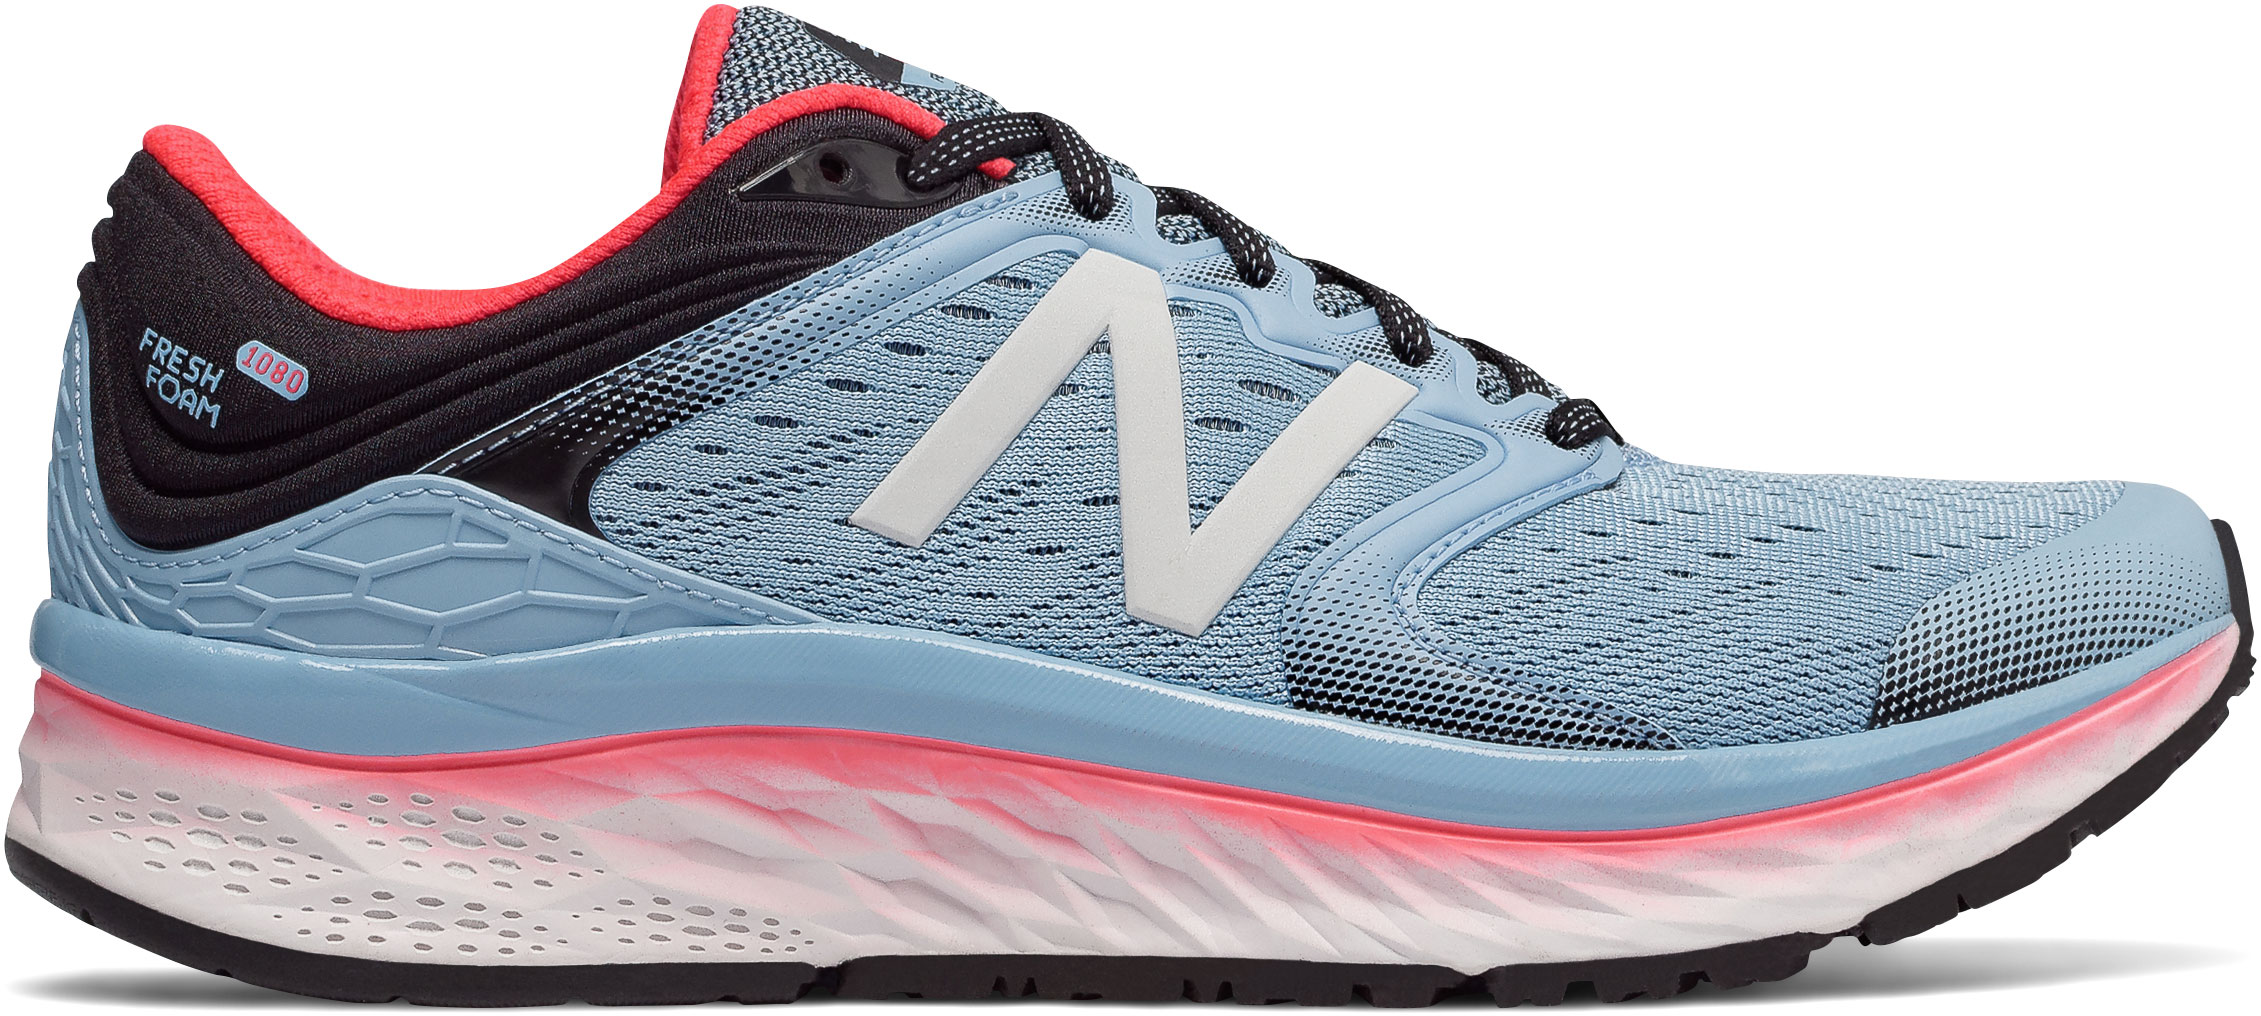 17af1665d53c7 ... New Balance Women s Fresh Foam 1080v8 W1080CS8 Clear Sky-Vivid  Coral-Black ...